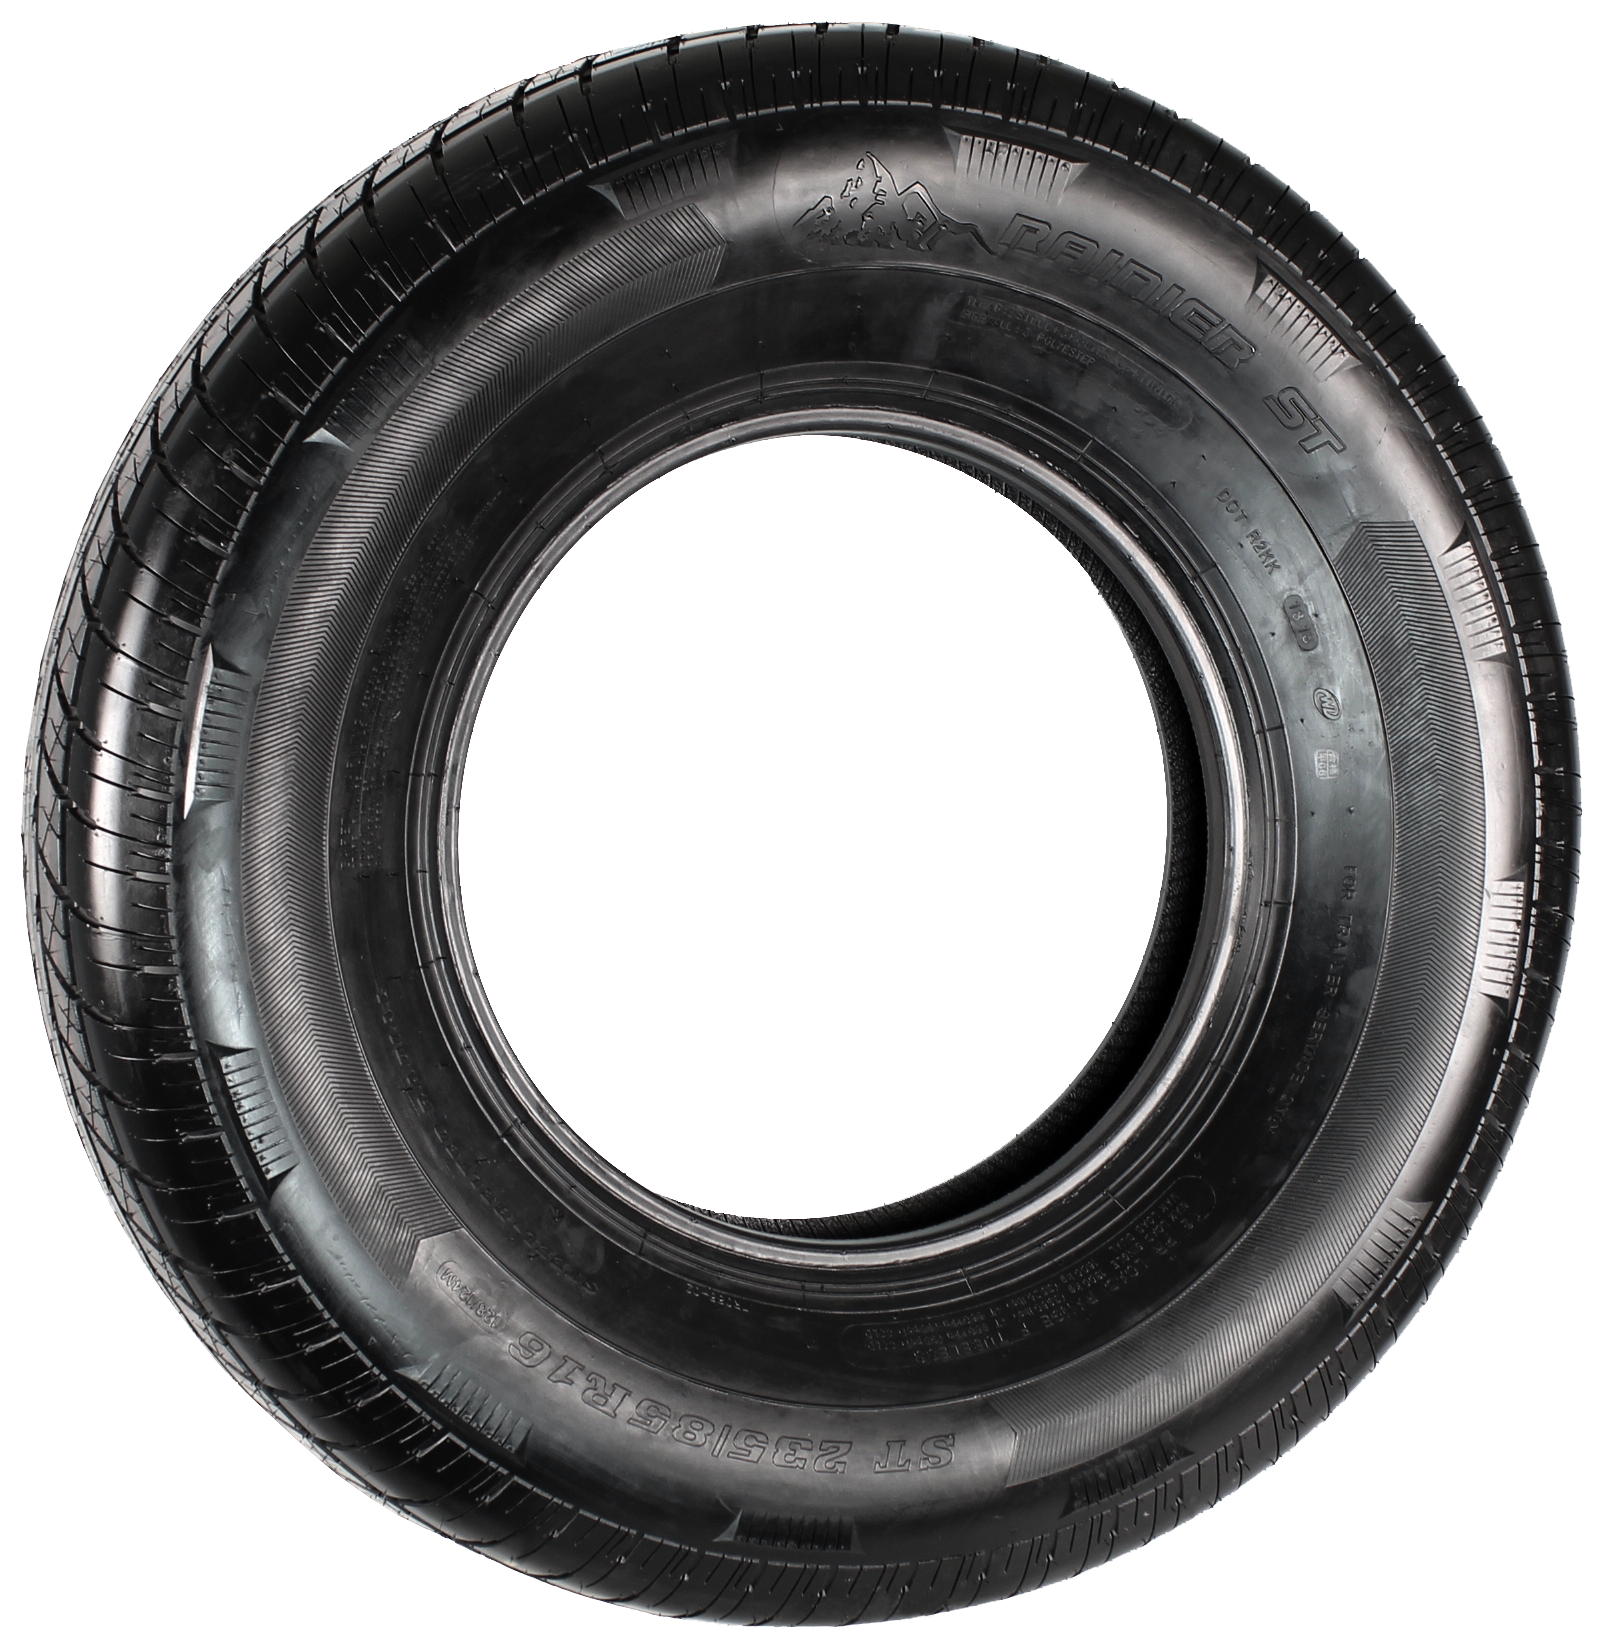 Rainier ST235/85R16 LRF 12-Ply Radial Trailer Tire Image